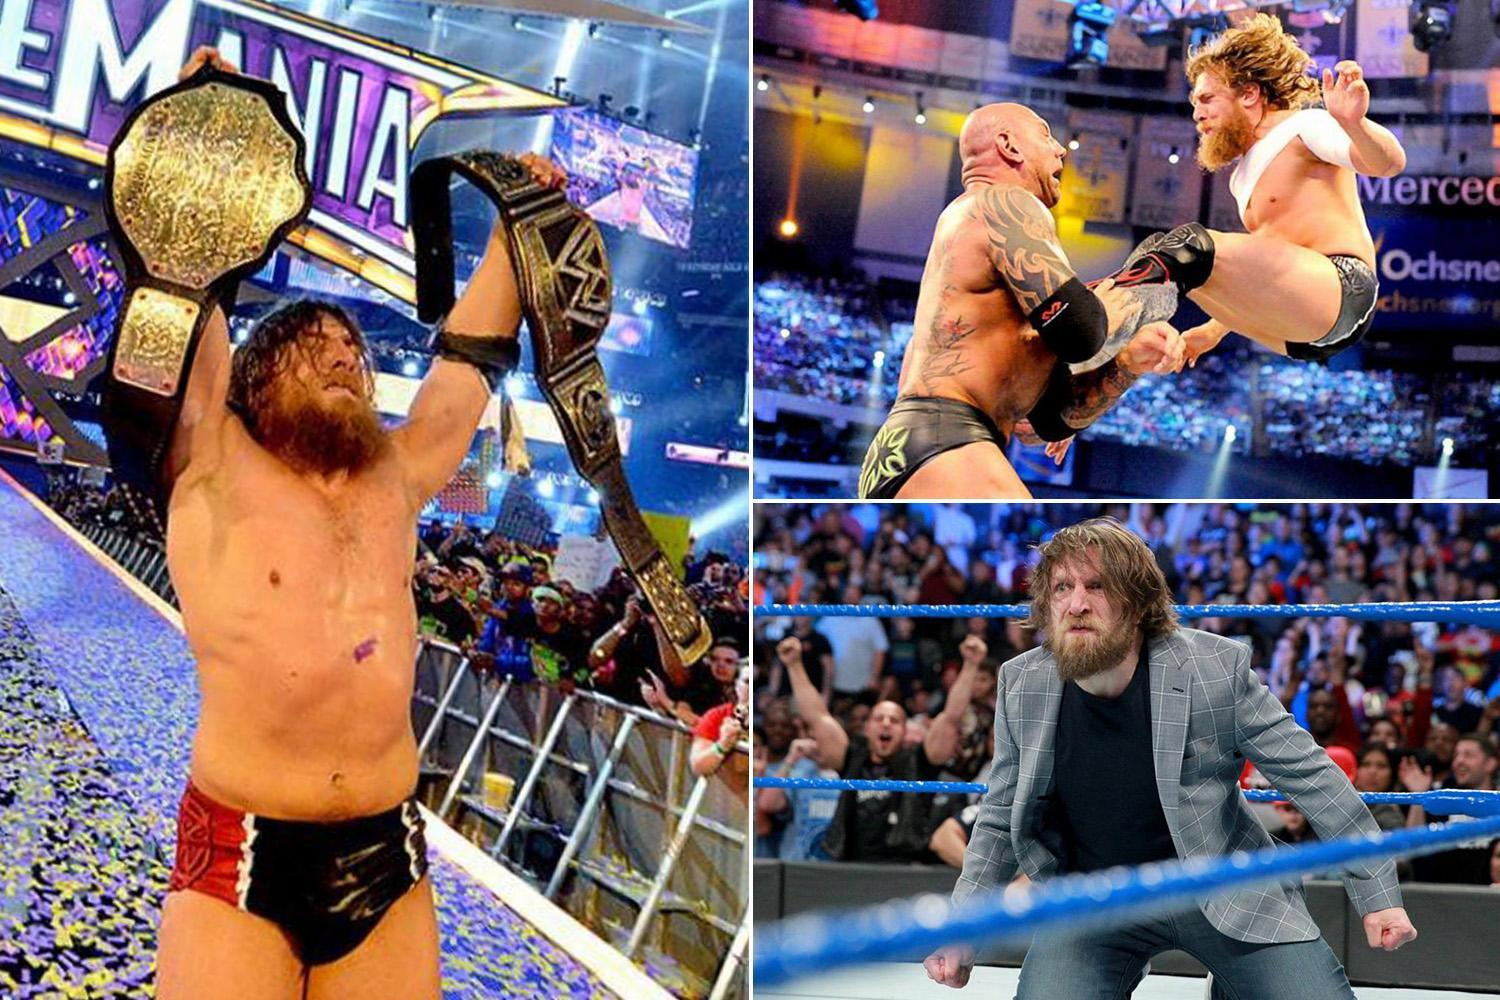 WWE has been given a second chance with Daniel Bryan and make him bigger than The Rock or Stone Cold Steve Austin